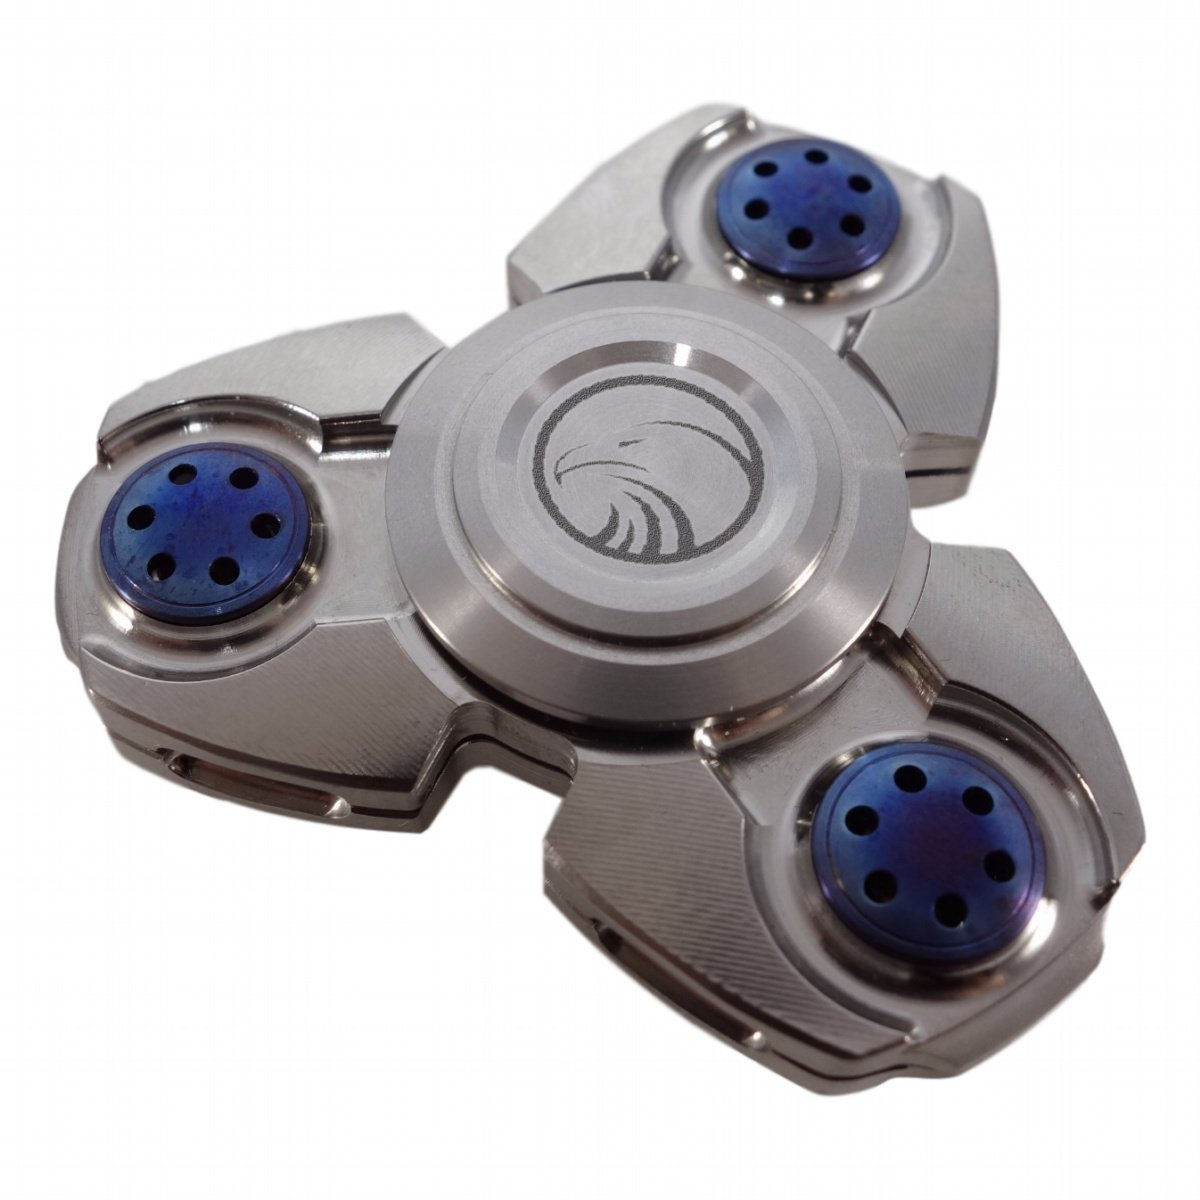 Valtcan Titanium Fidget Spinner Gyroscope by Valtcan (Image #2)